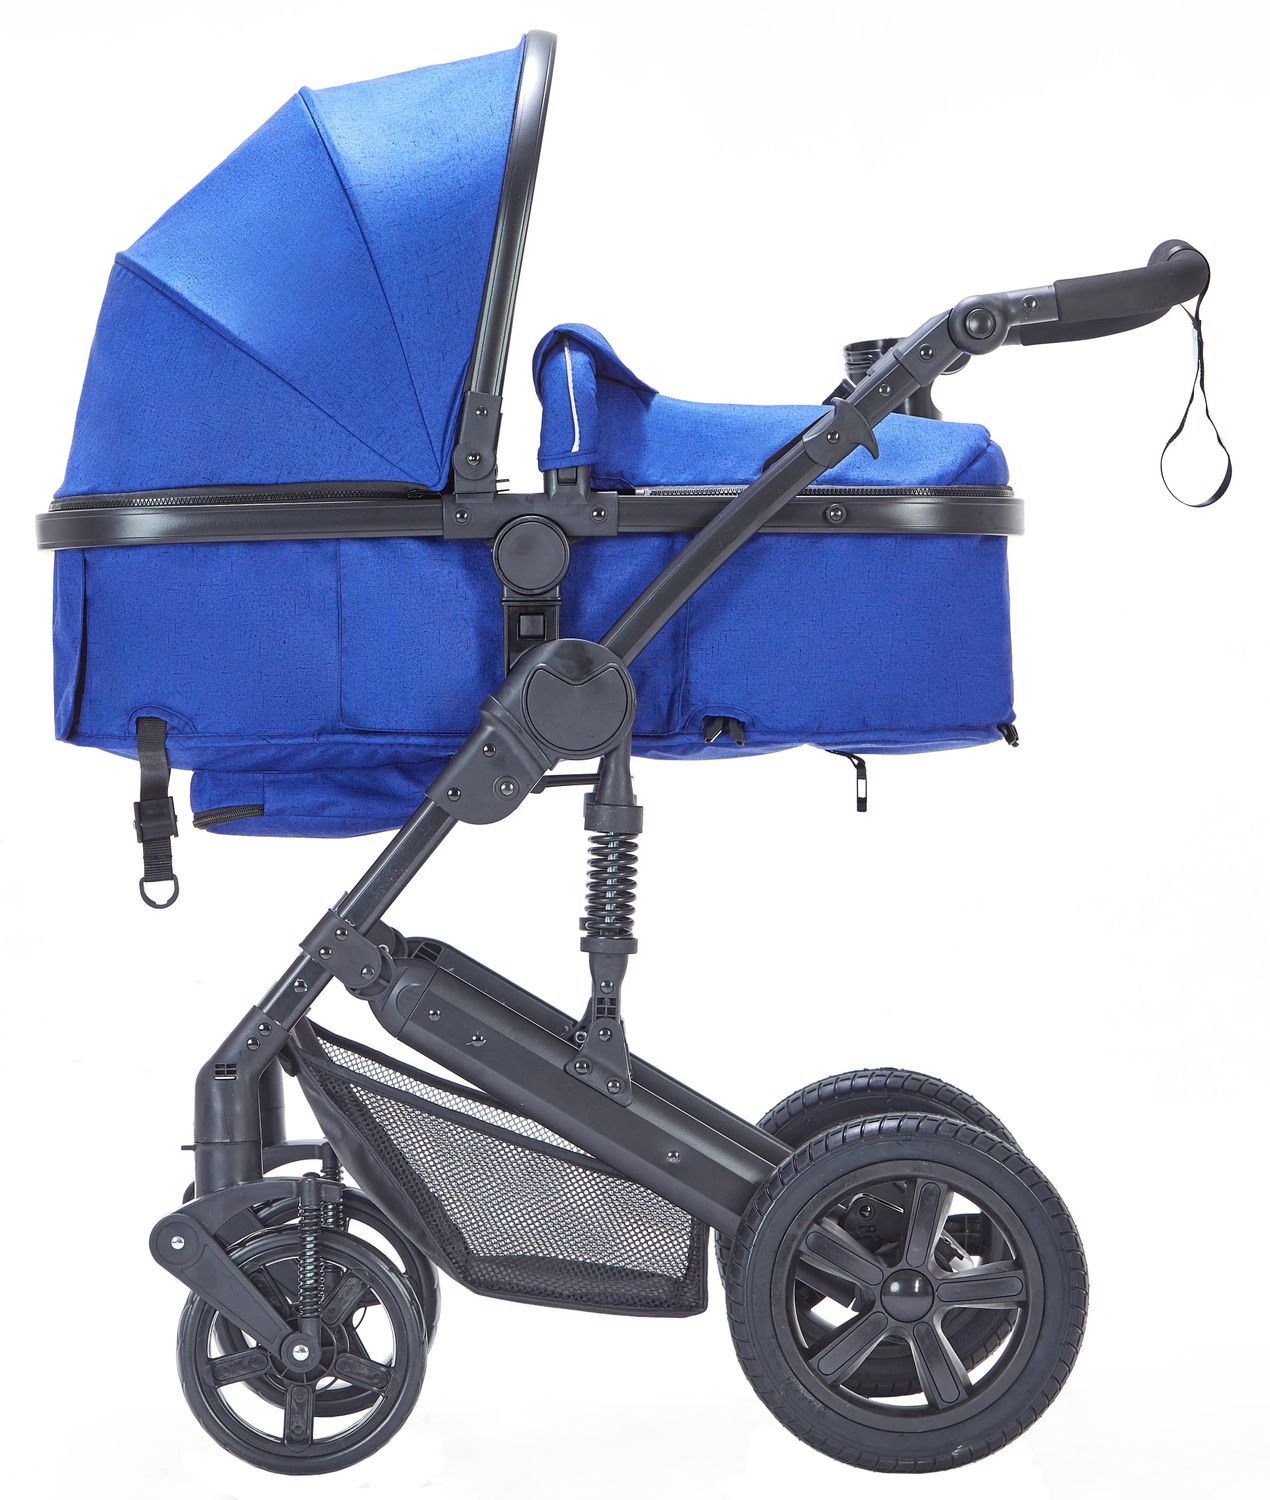 Kinderwagen MOTION 2 in 1 blau / schwarz